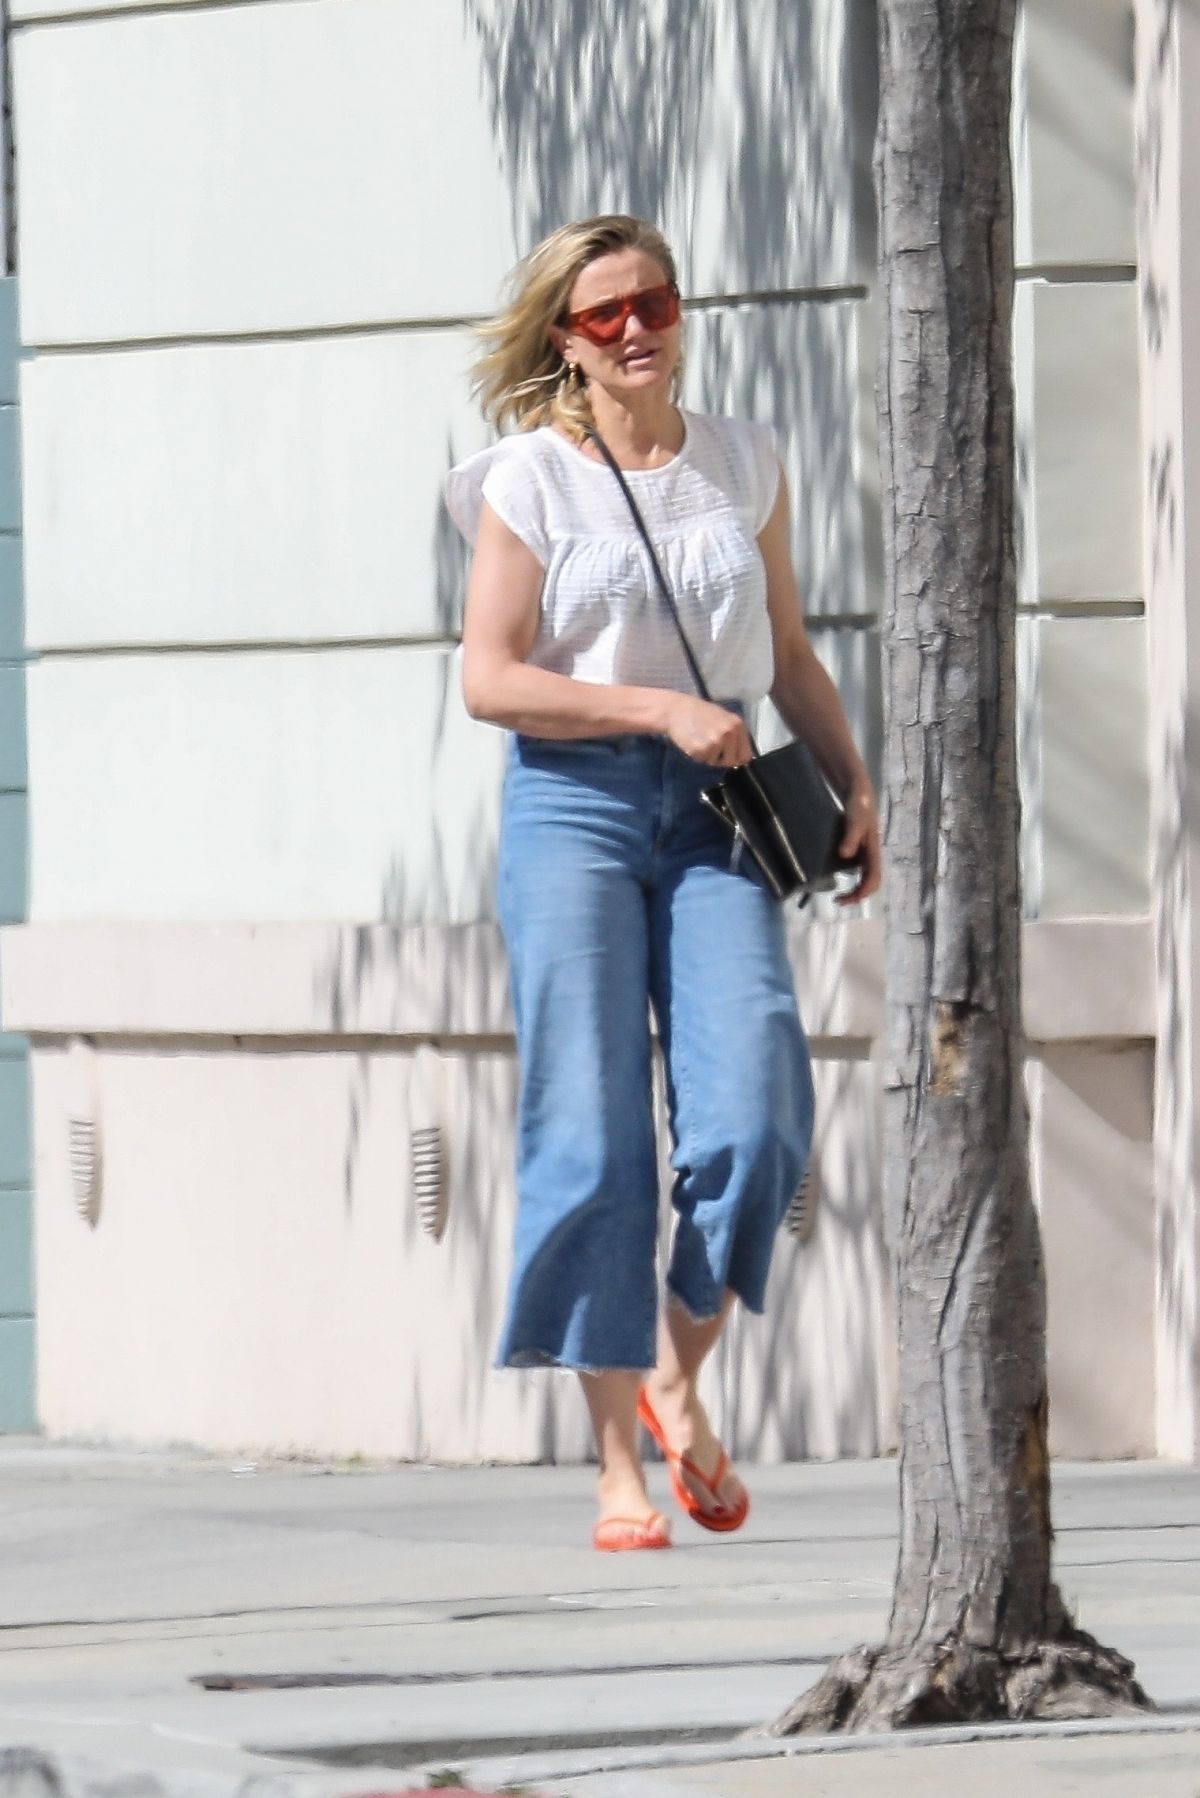 CAMERON DIAZ Out in Los Angeles 04/18/2019 – HawtCelebsCameron Diaz Net Worth 2019